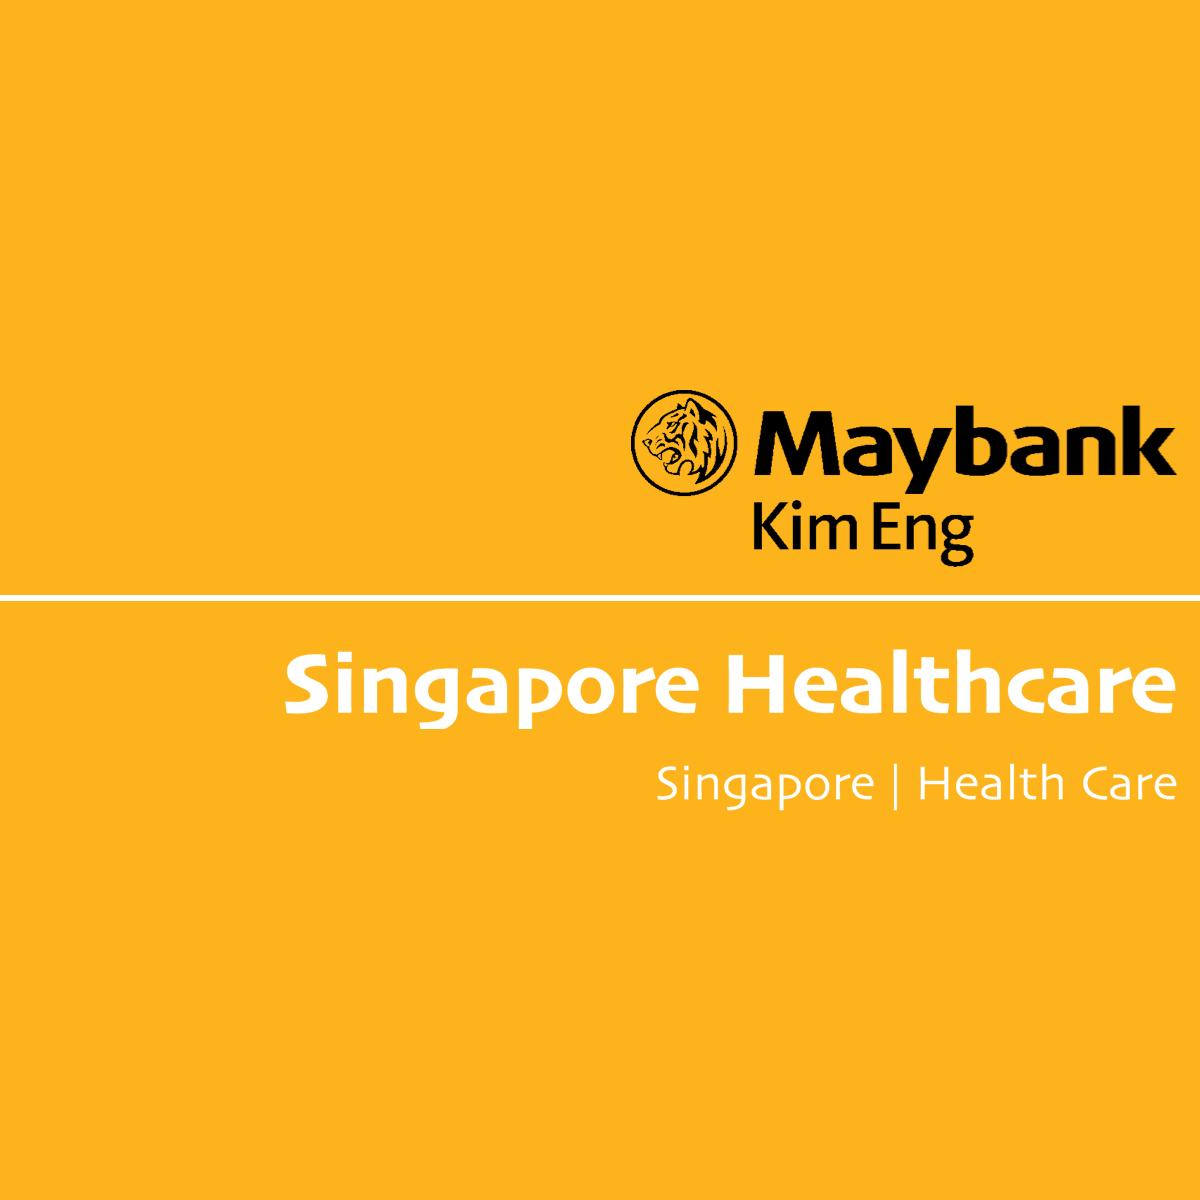 Singapore Healthcare - Maybank Kim Eng 2017-06-13: Hong Kong Marketing Feedback